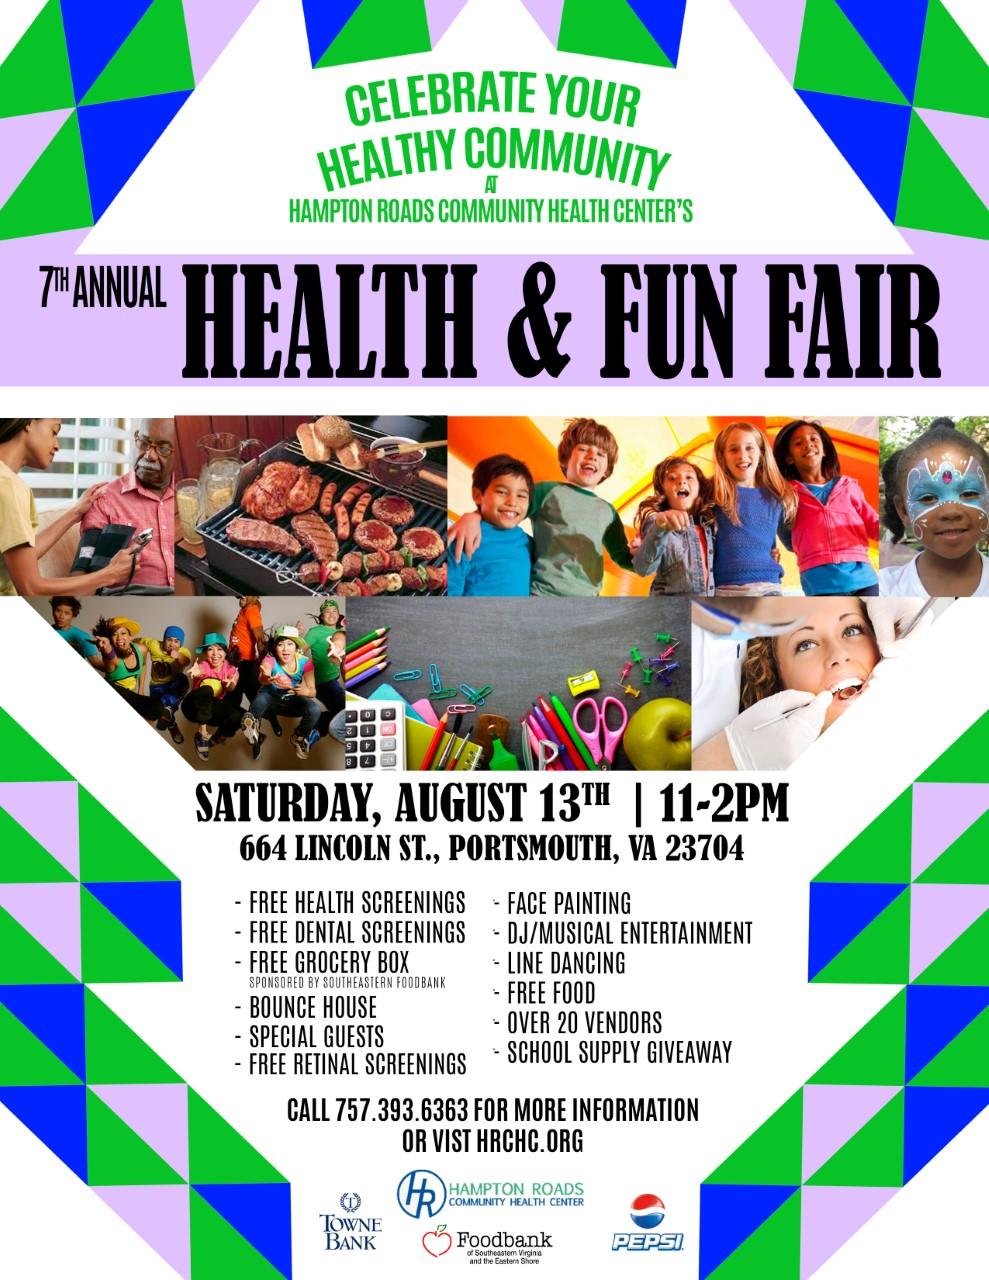 7th Annual Health & Fun Fair